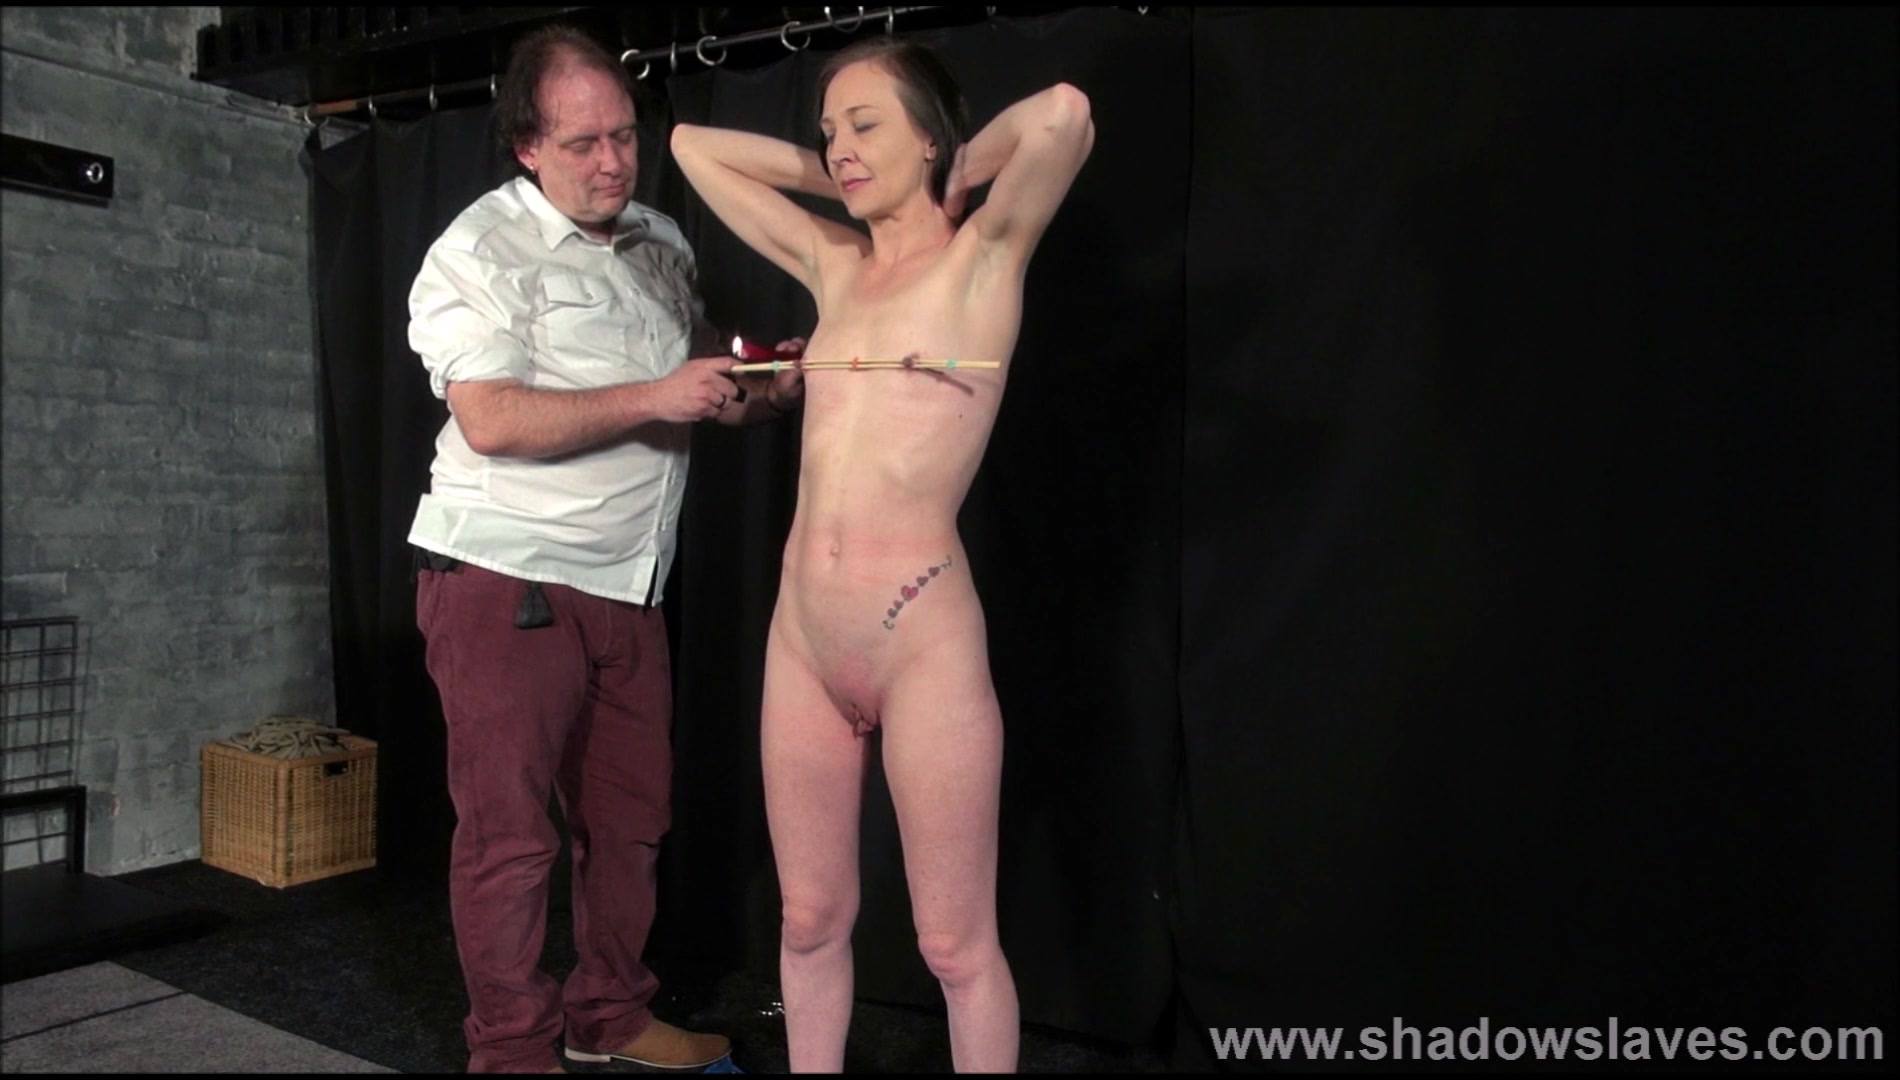 Obedience Porn Tube candle wax bdsm and obedience slave training